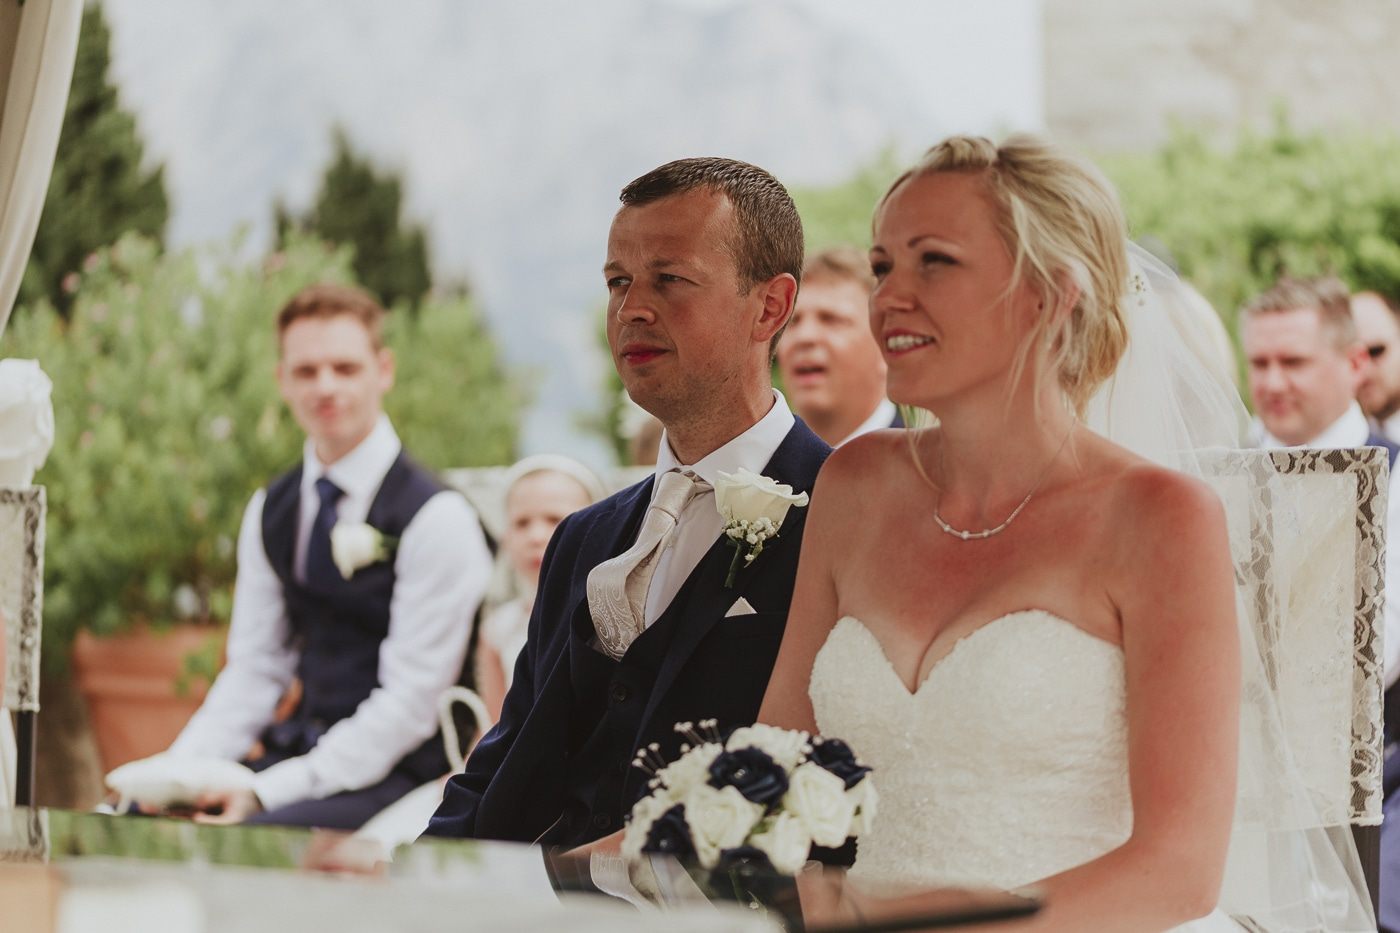 Bride and groom smiling with flowers on her lap during the wedding vows